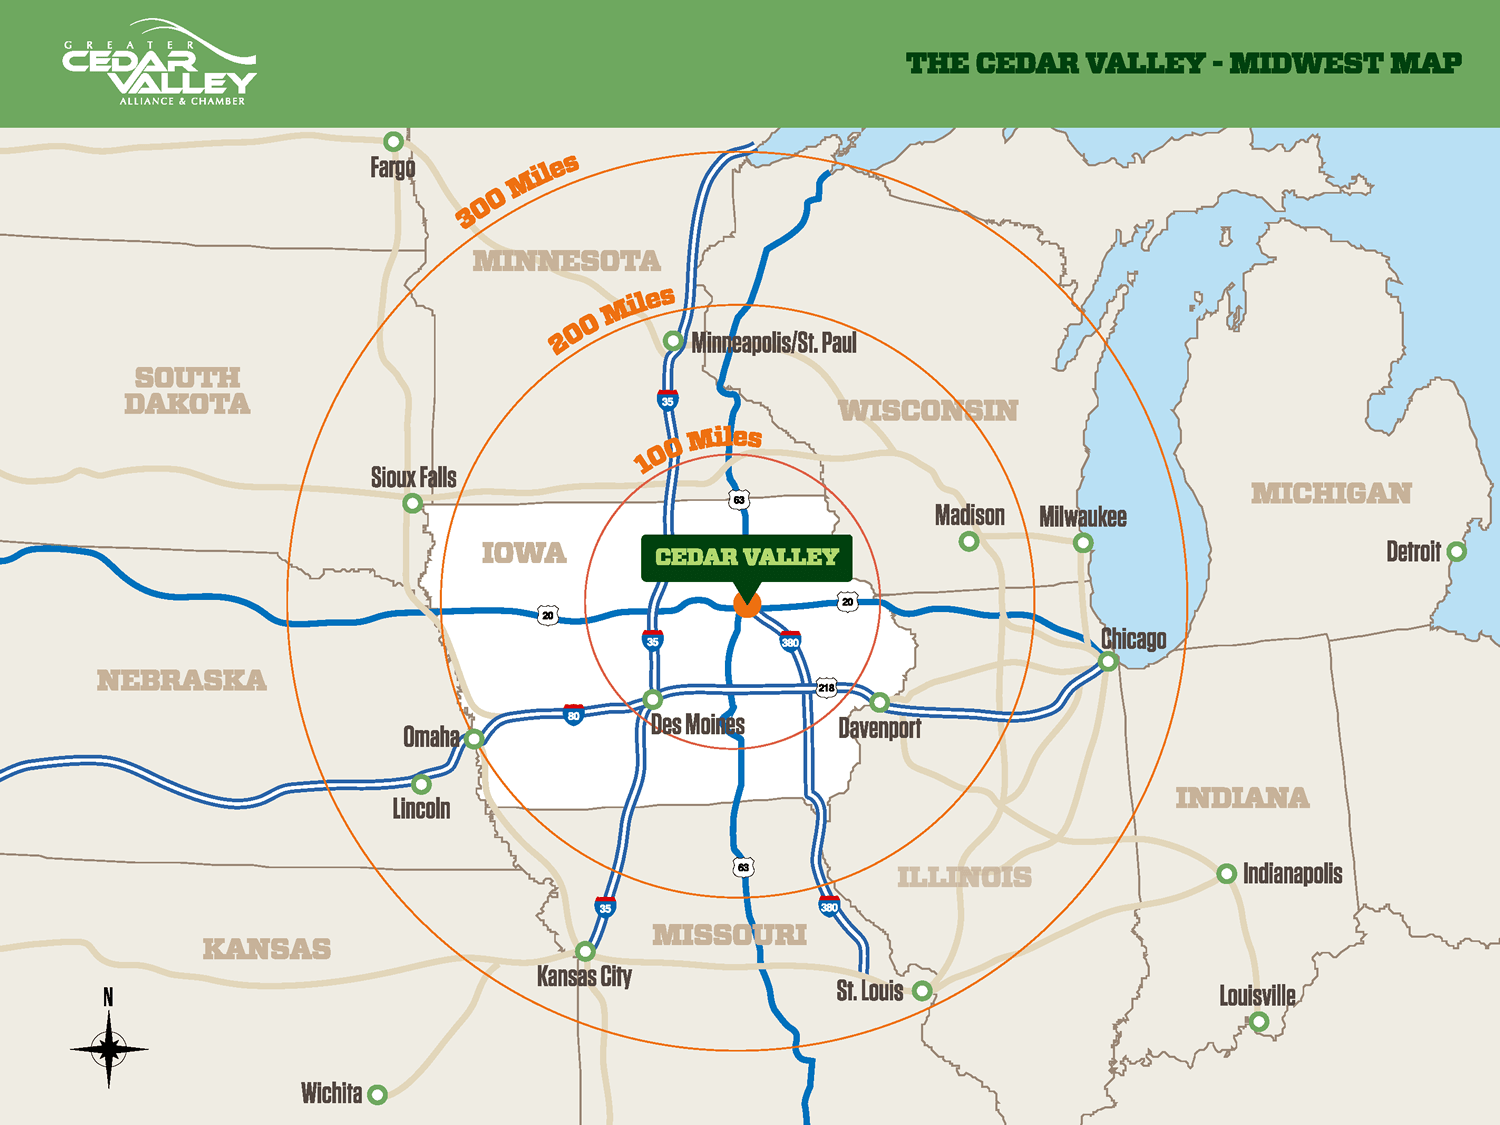 map of the Cedar Valley's location in the midwest